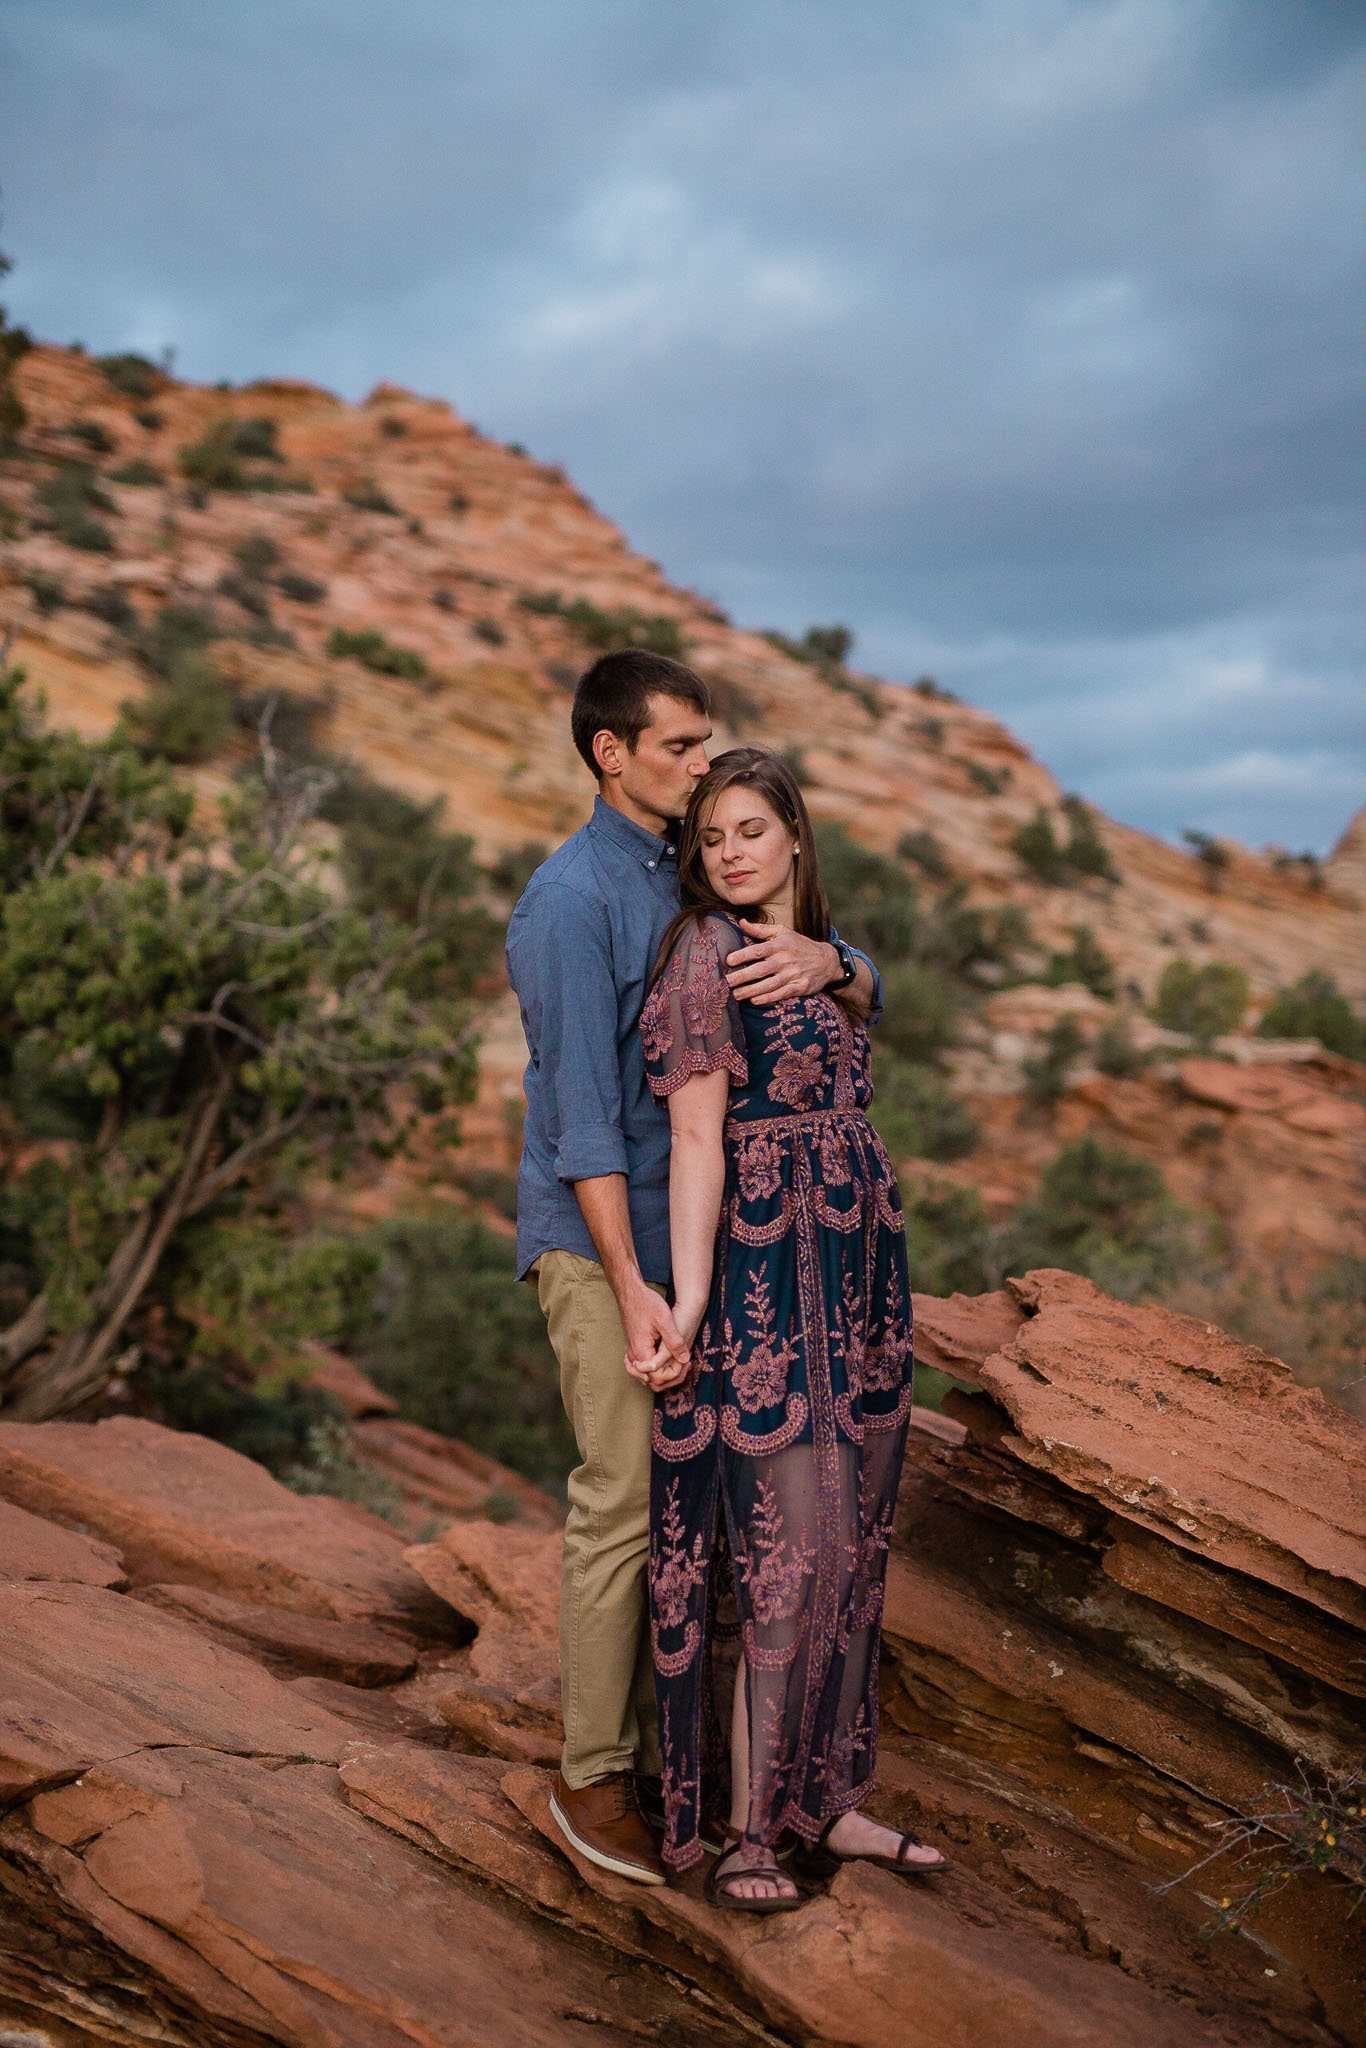 Couple snuggle for intimate portrait during their adventure engagement session in Zion National Park, Utah